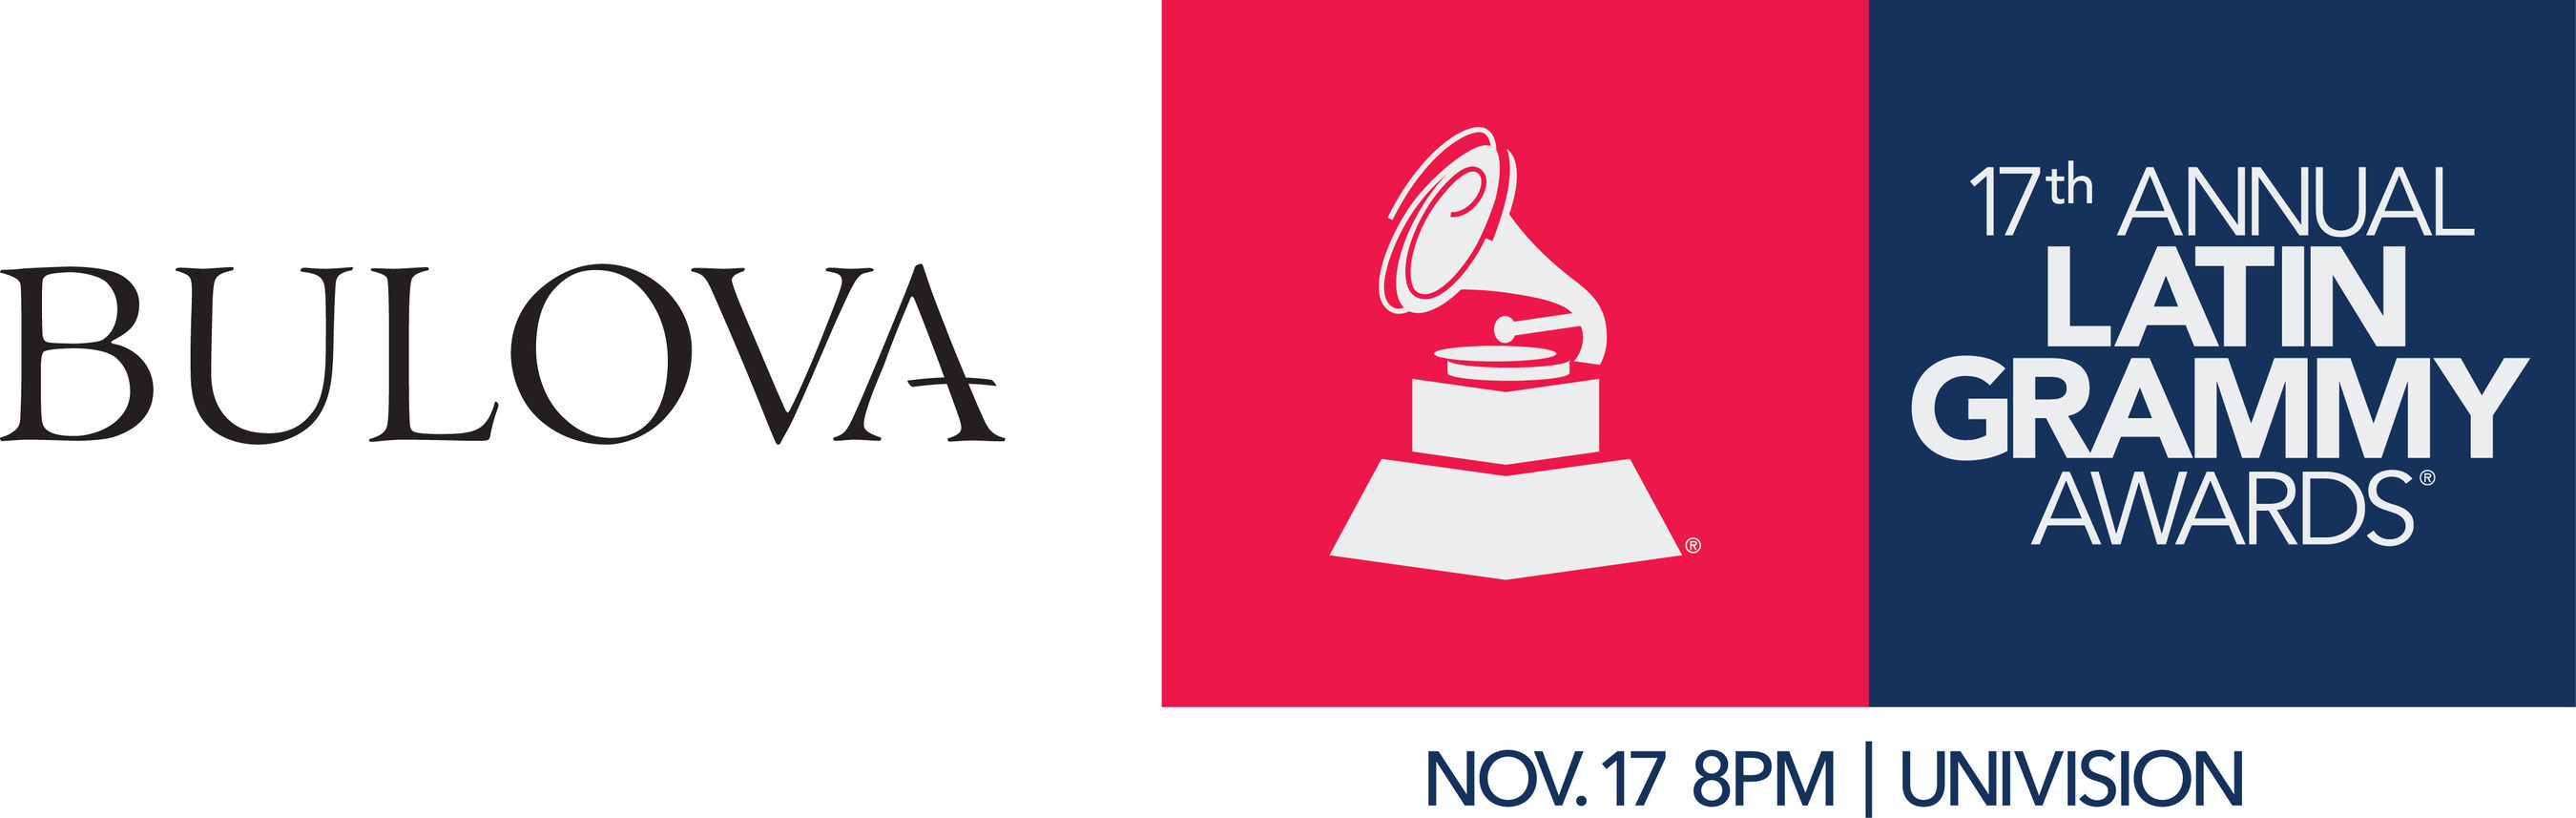 Bulova Corporation and The Latin Recording Academy' Announce Partnership for 17th Annual Latin GRAMMY Awards'